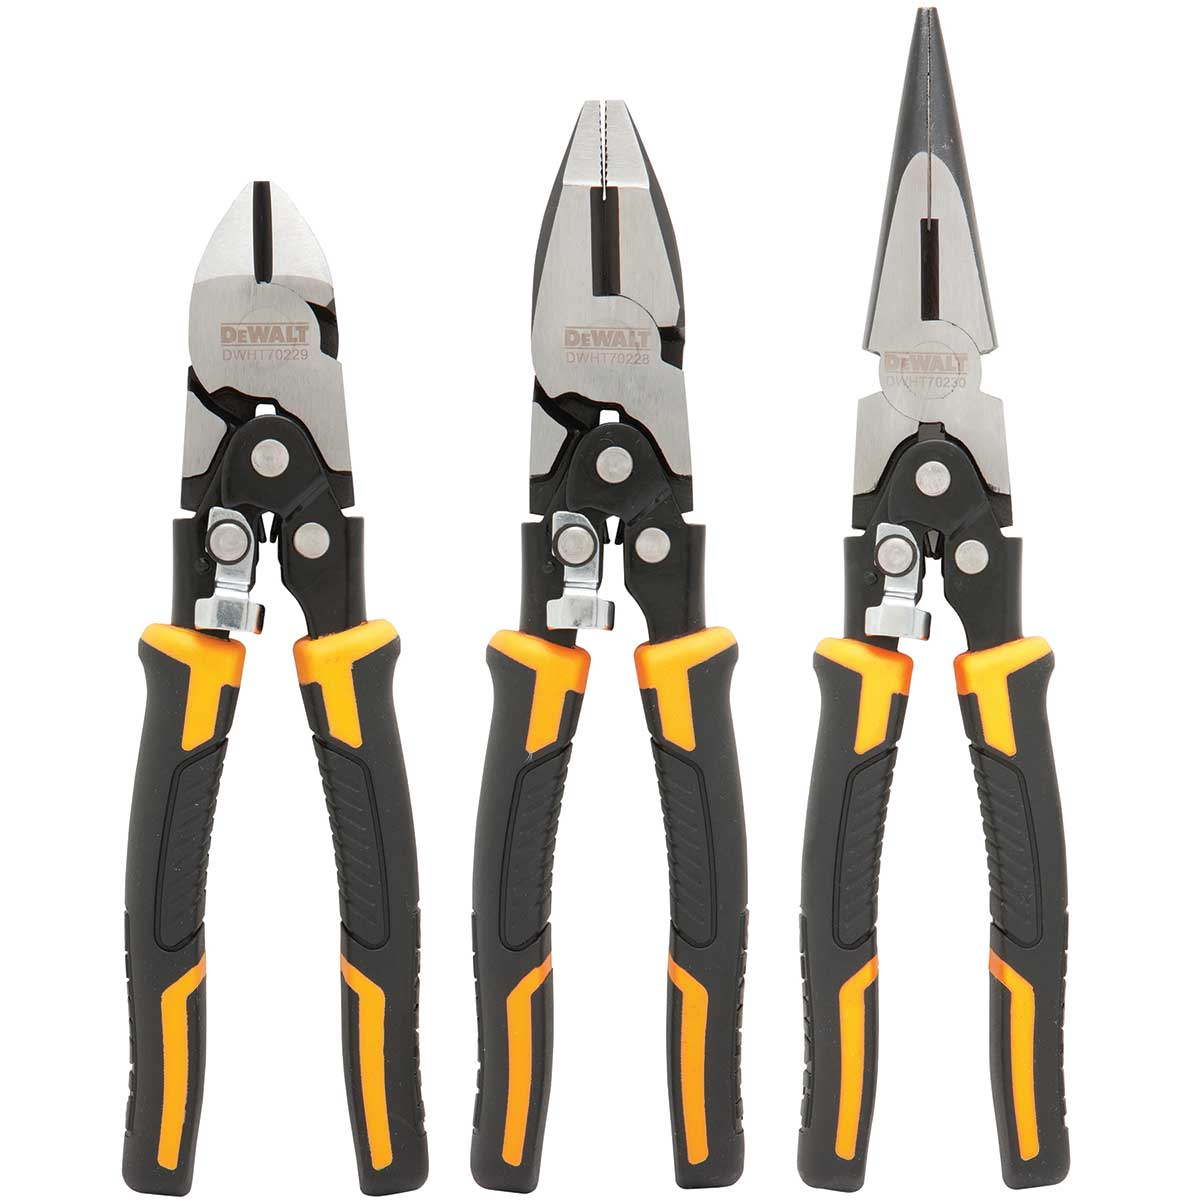 DeWalt Compound Pliers 3 Pack